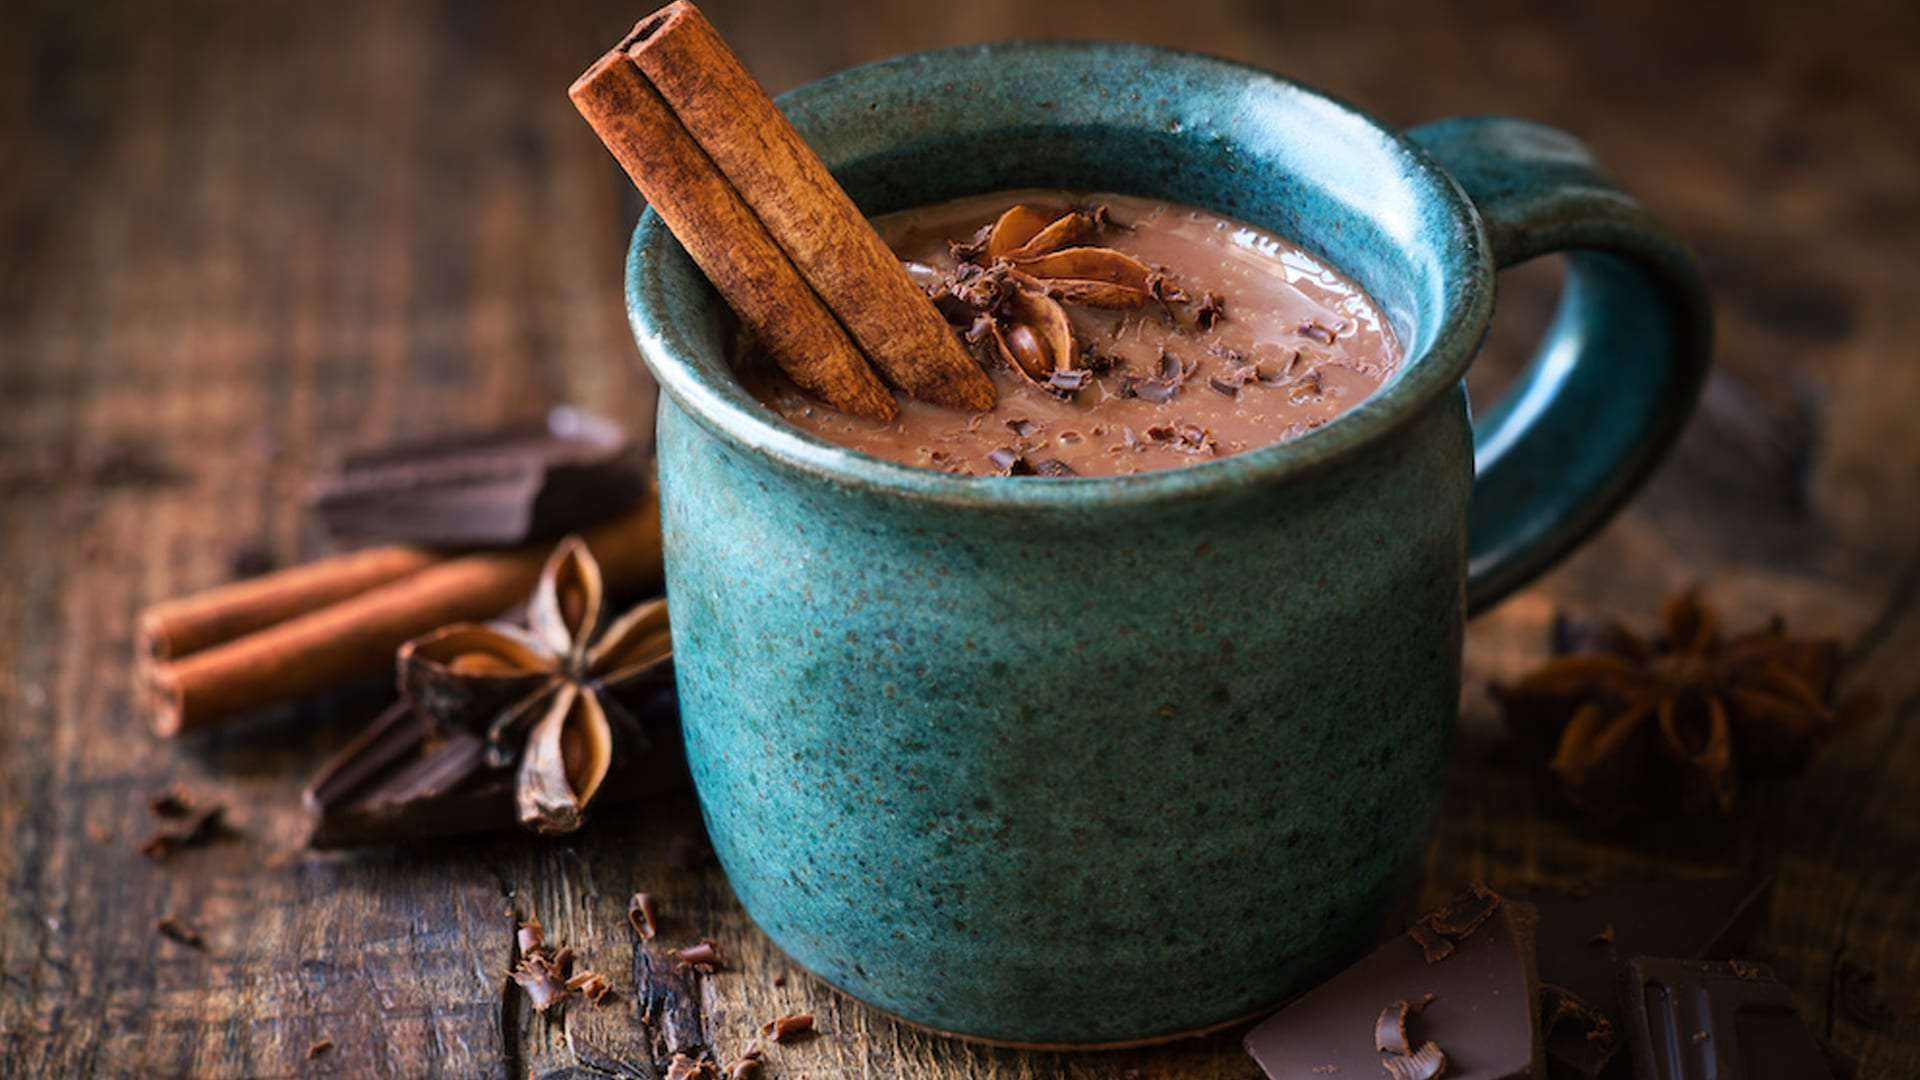 can you make hot chocolate in a coffee maker